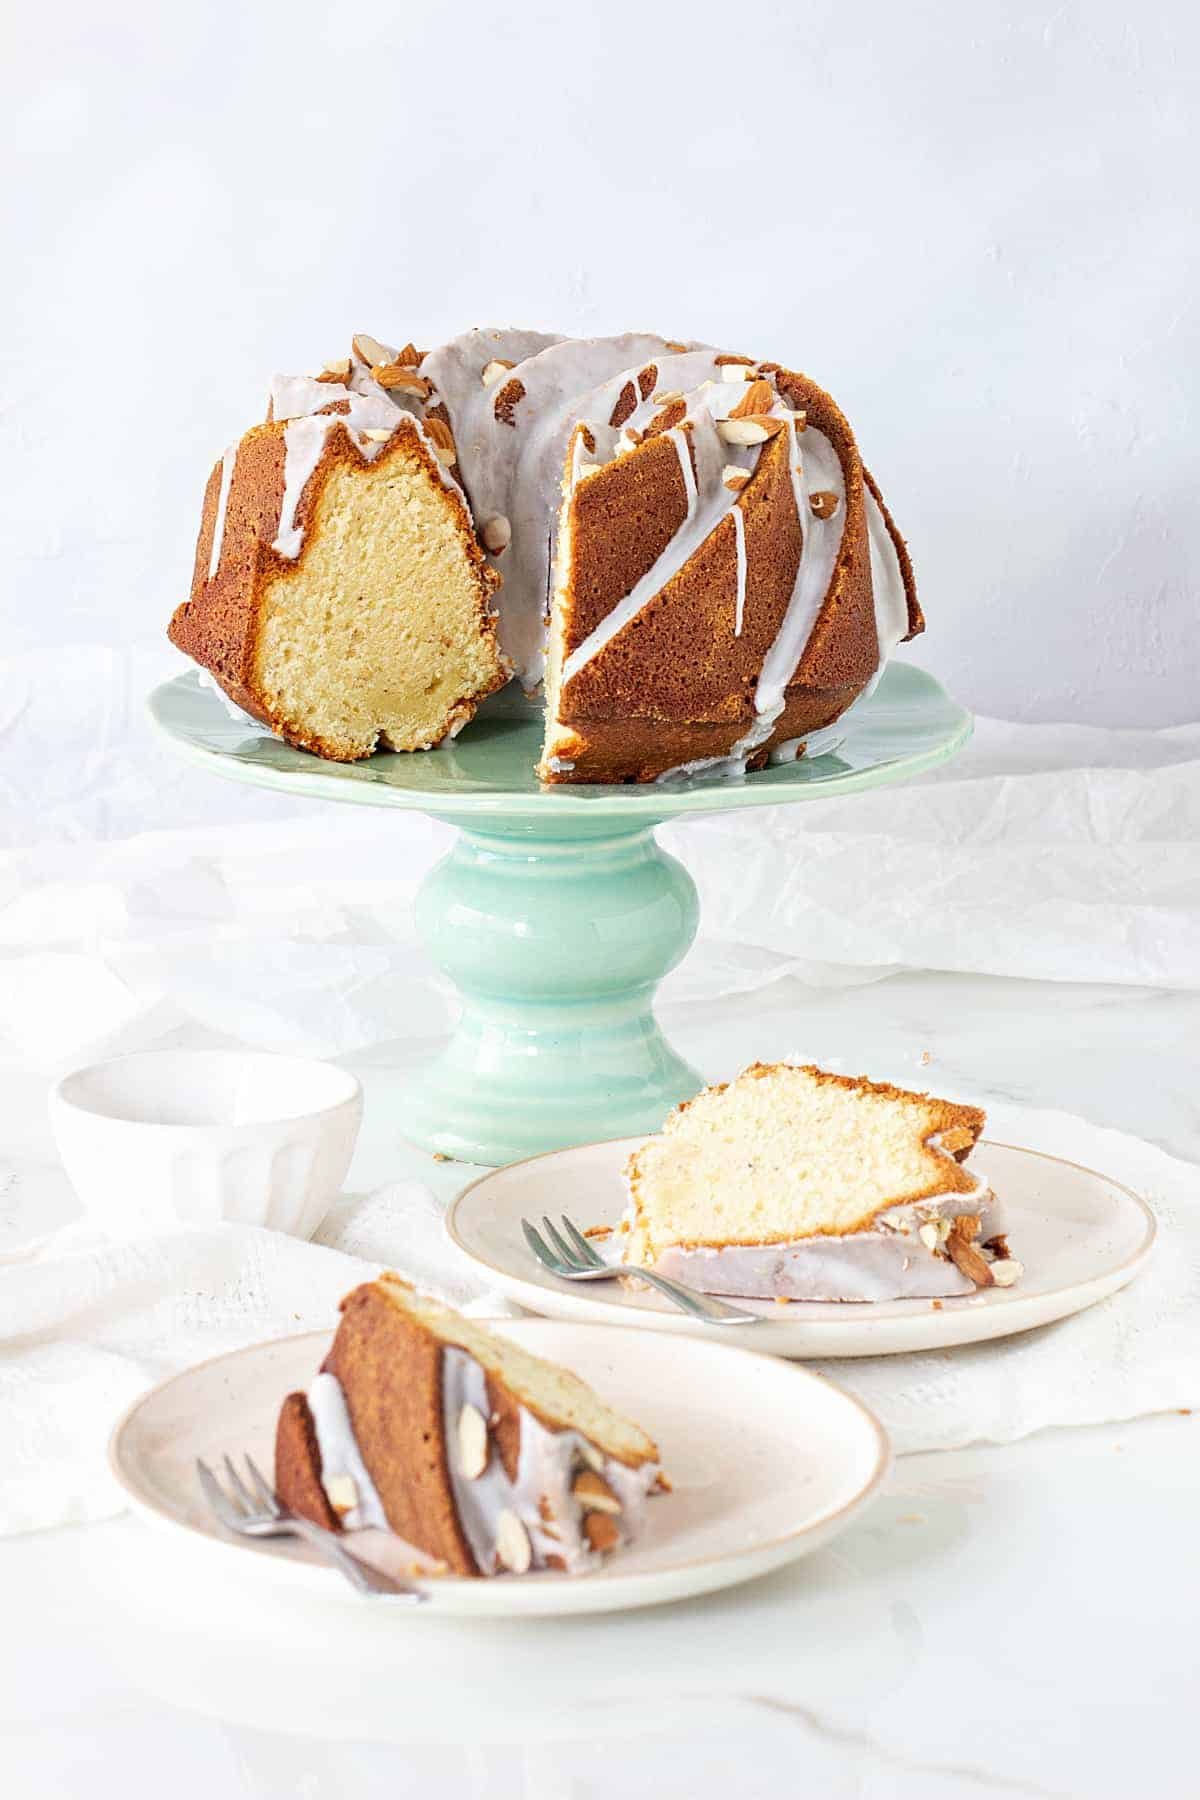 Bundt cake on a green cake stand, two slices on plates, forks, white surface